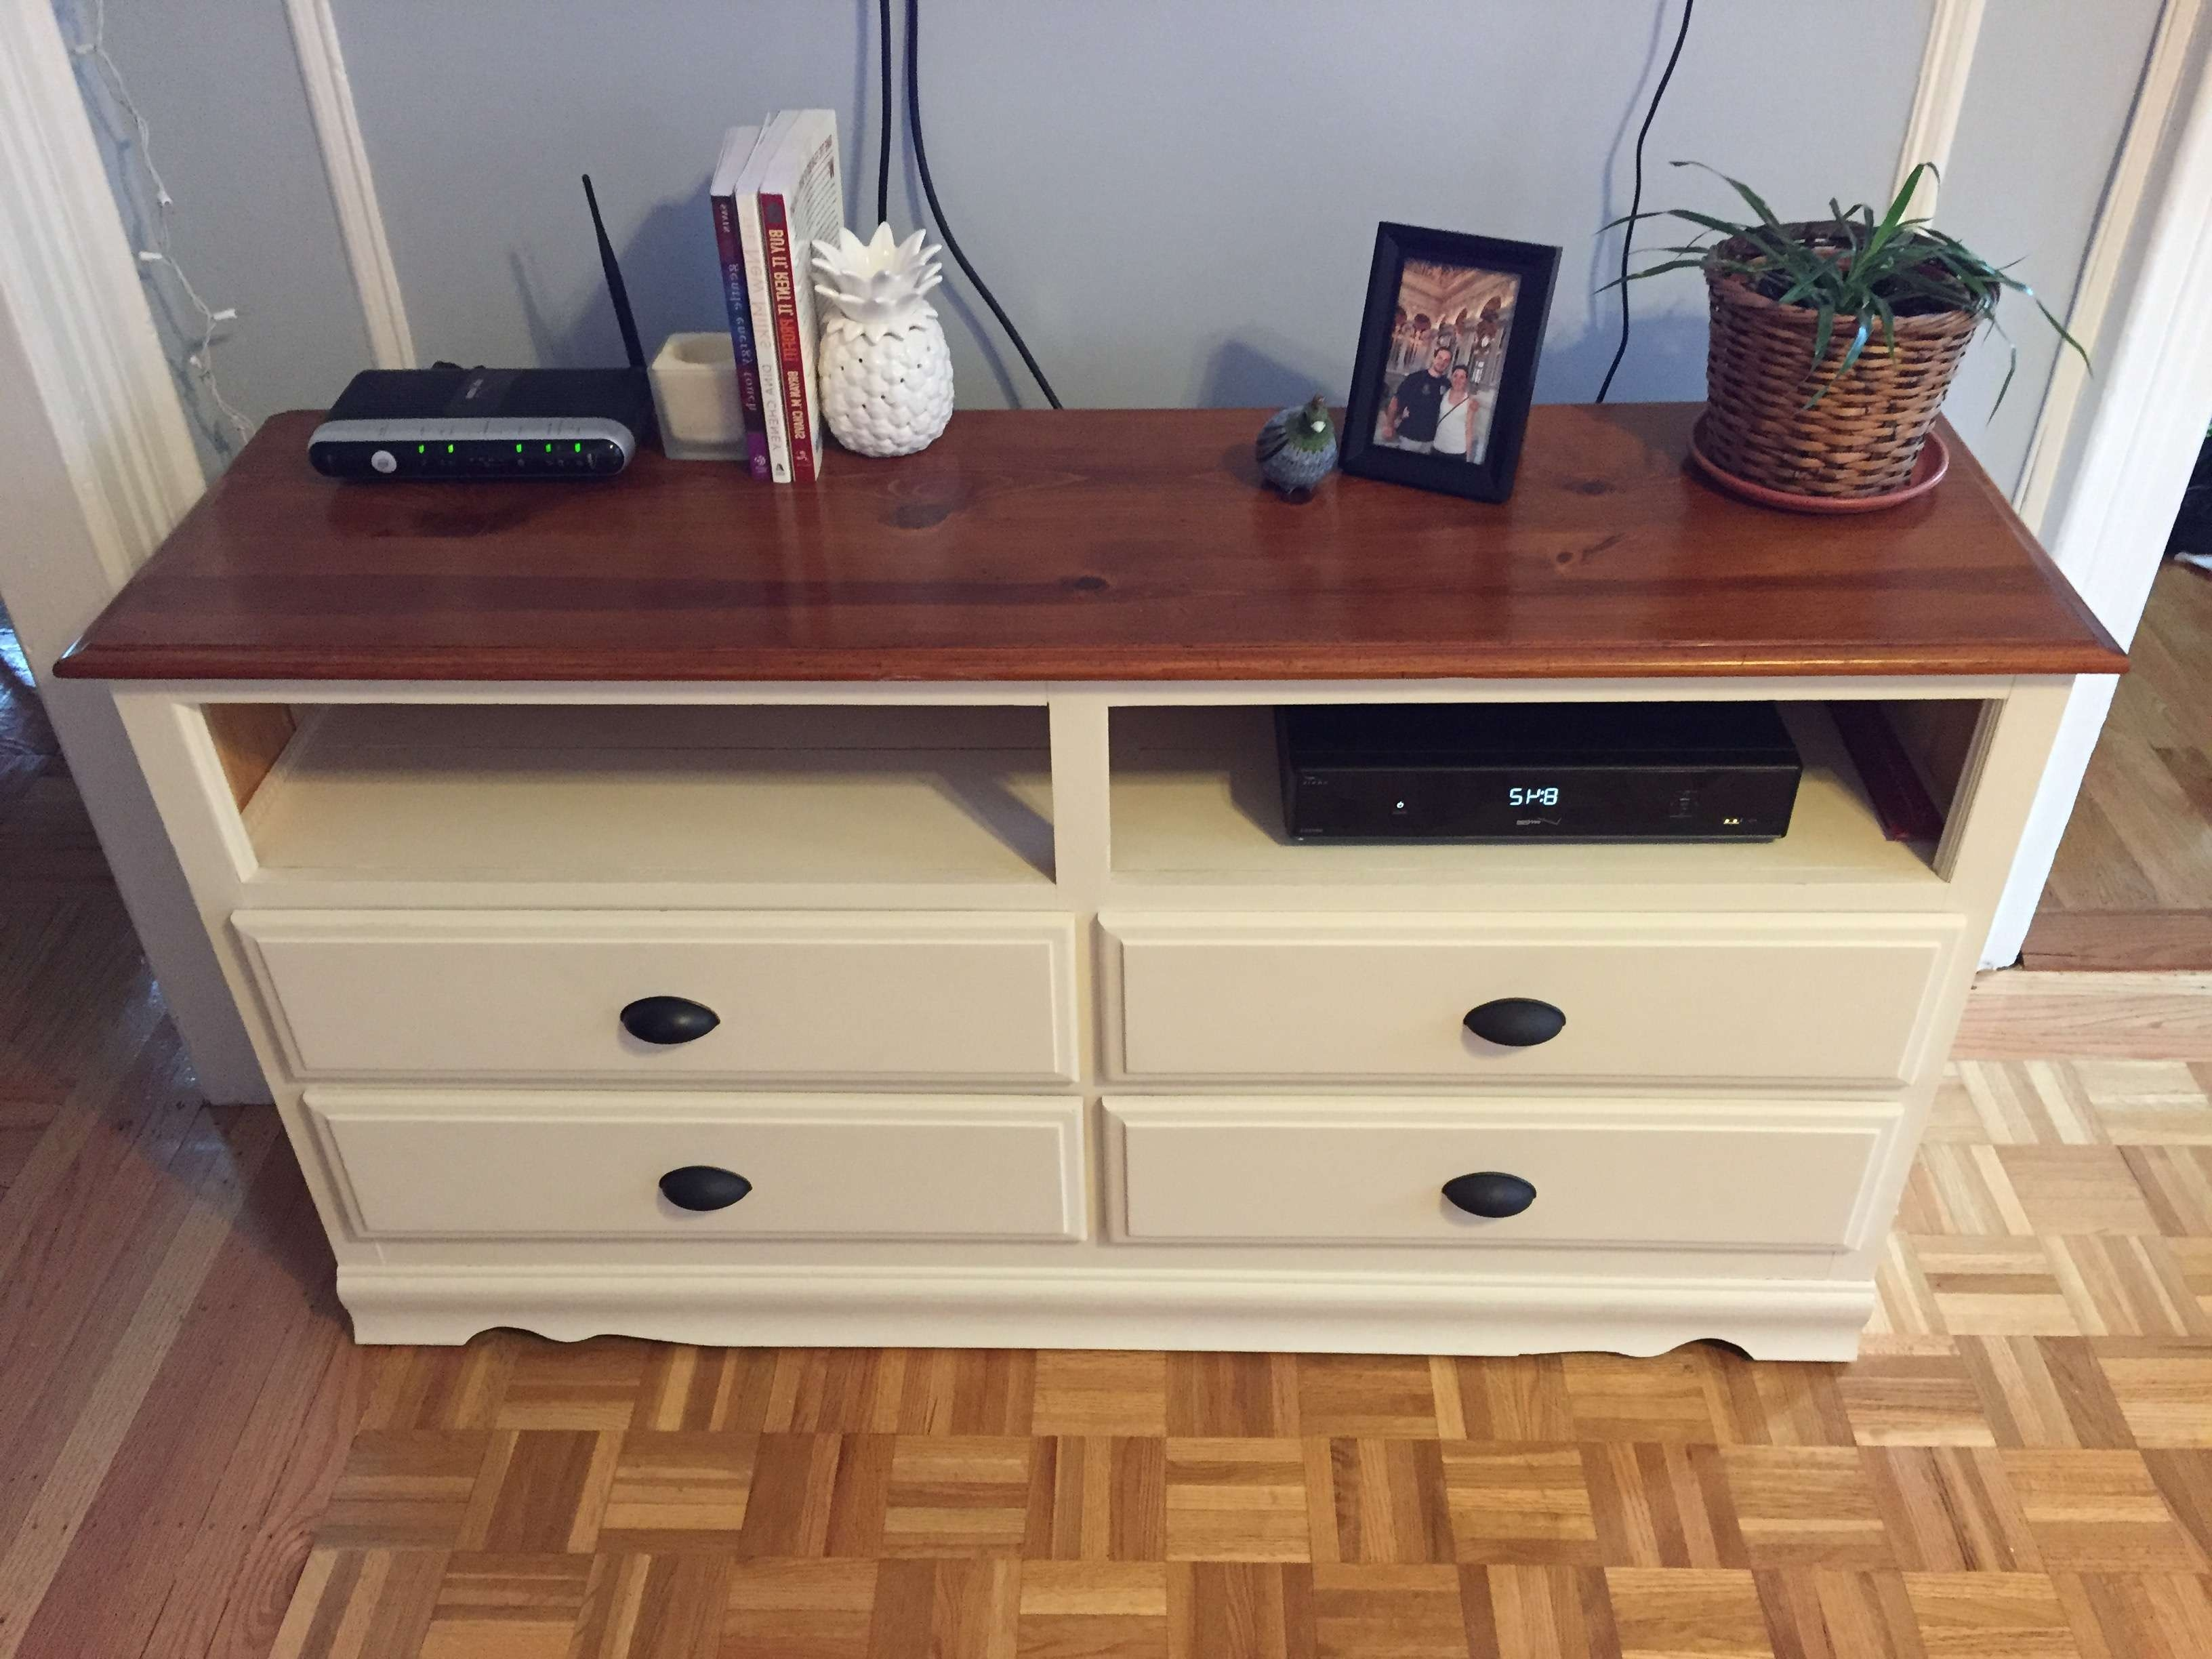 Bedroom Tv Stand Dresser Combo | Johnfante Dressers In Dresser And Tv Stands Combination (View 4 of 15)